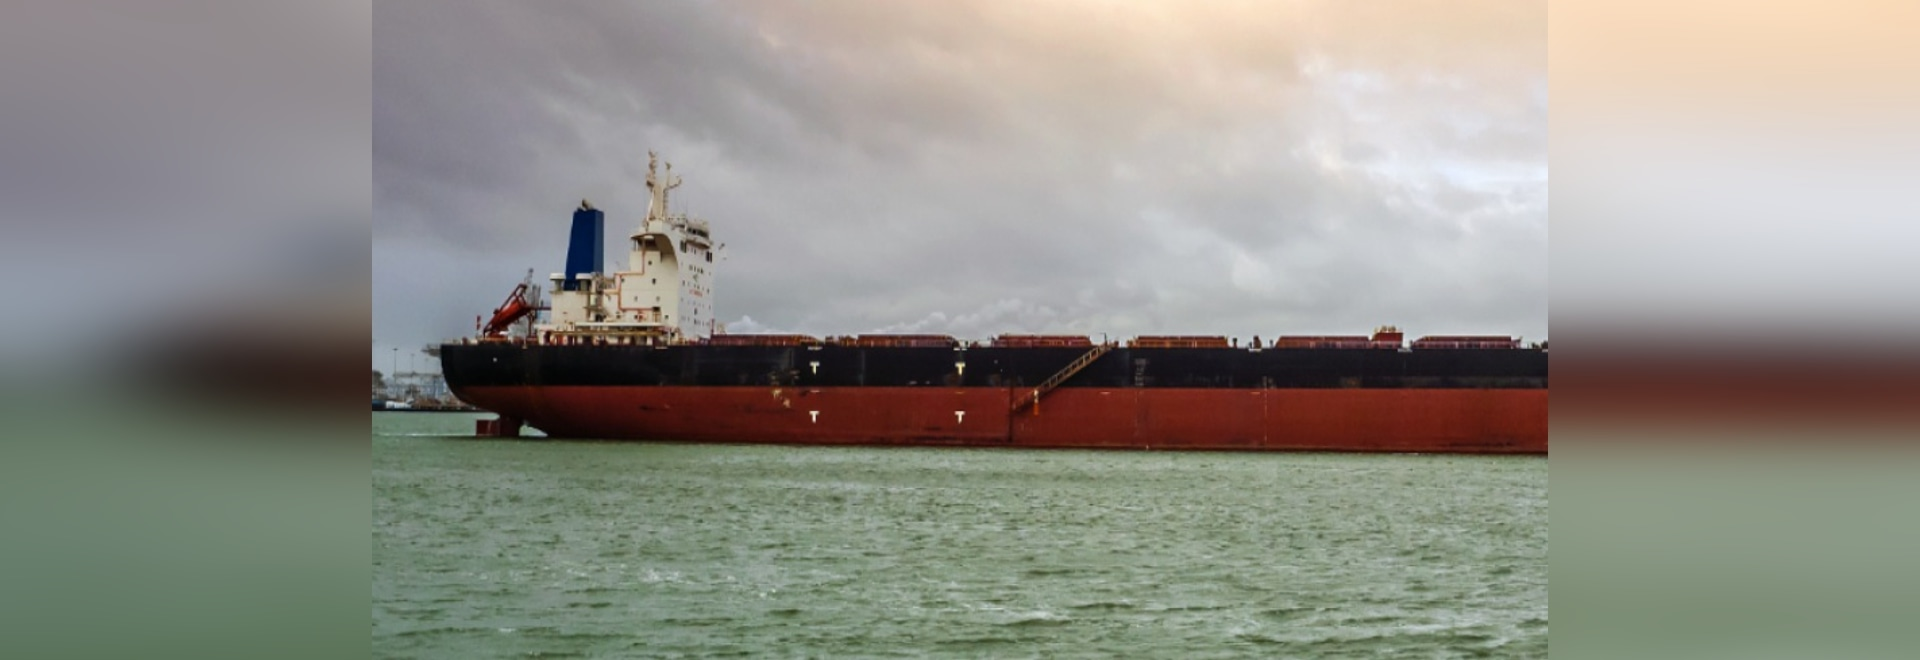 Safe Bulkers Installs, Commissions Its First Scrubber